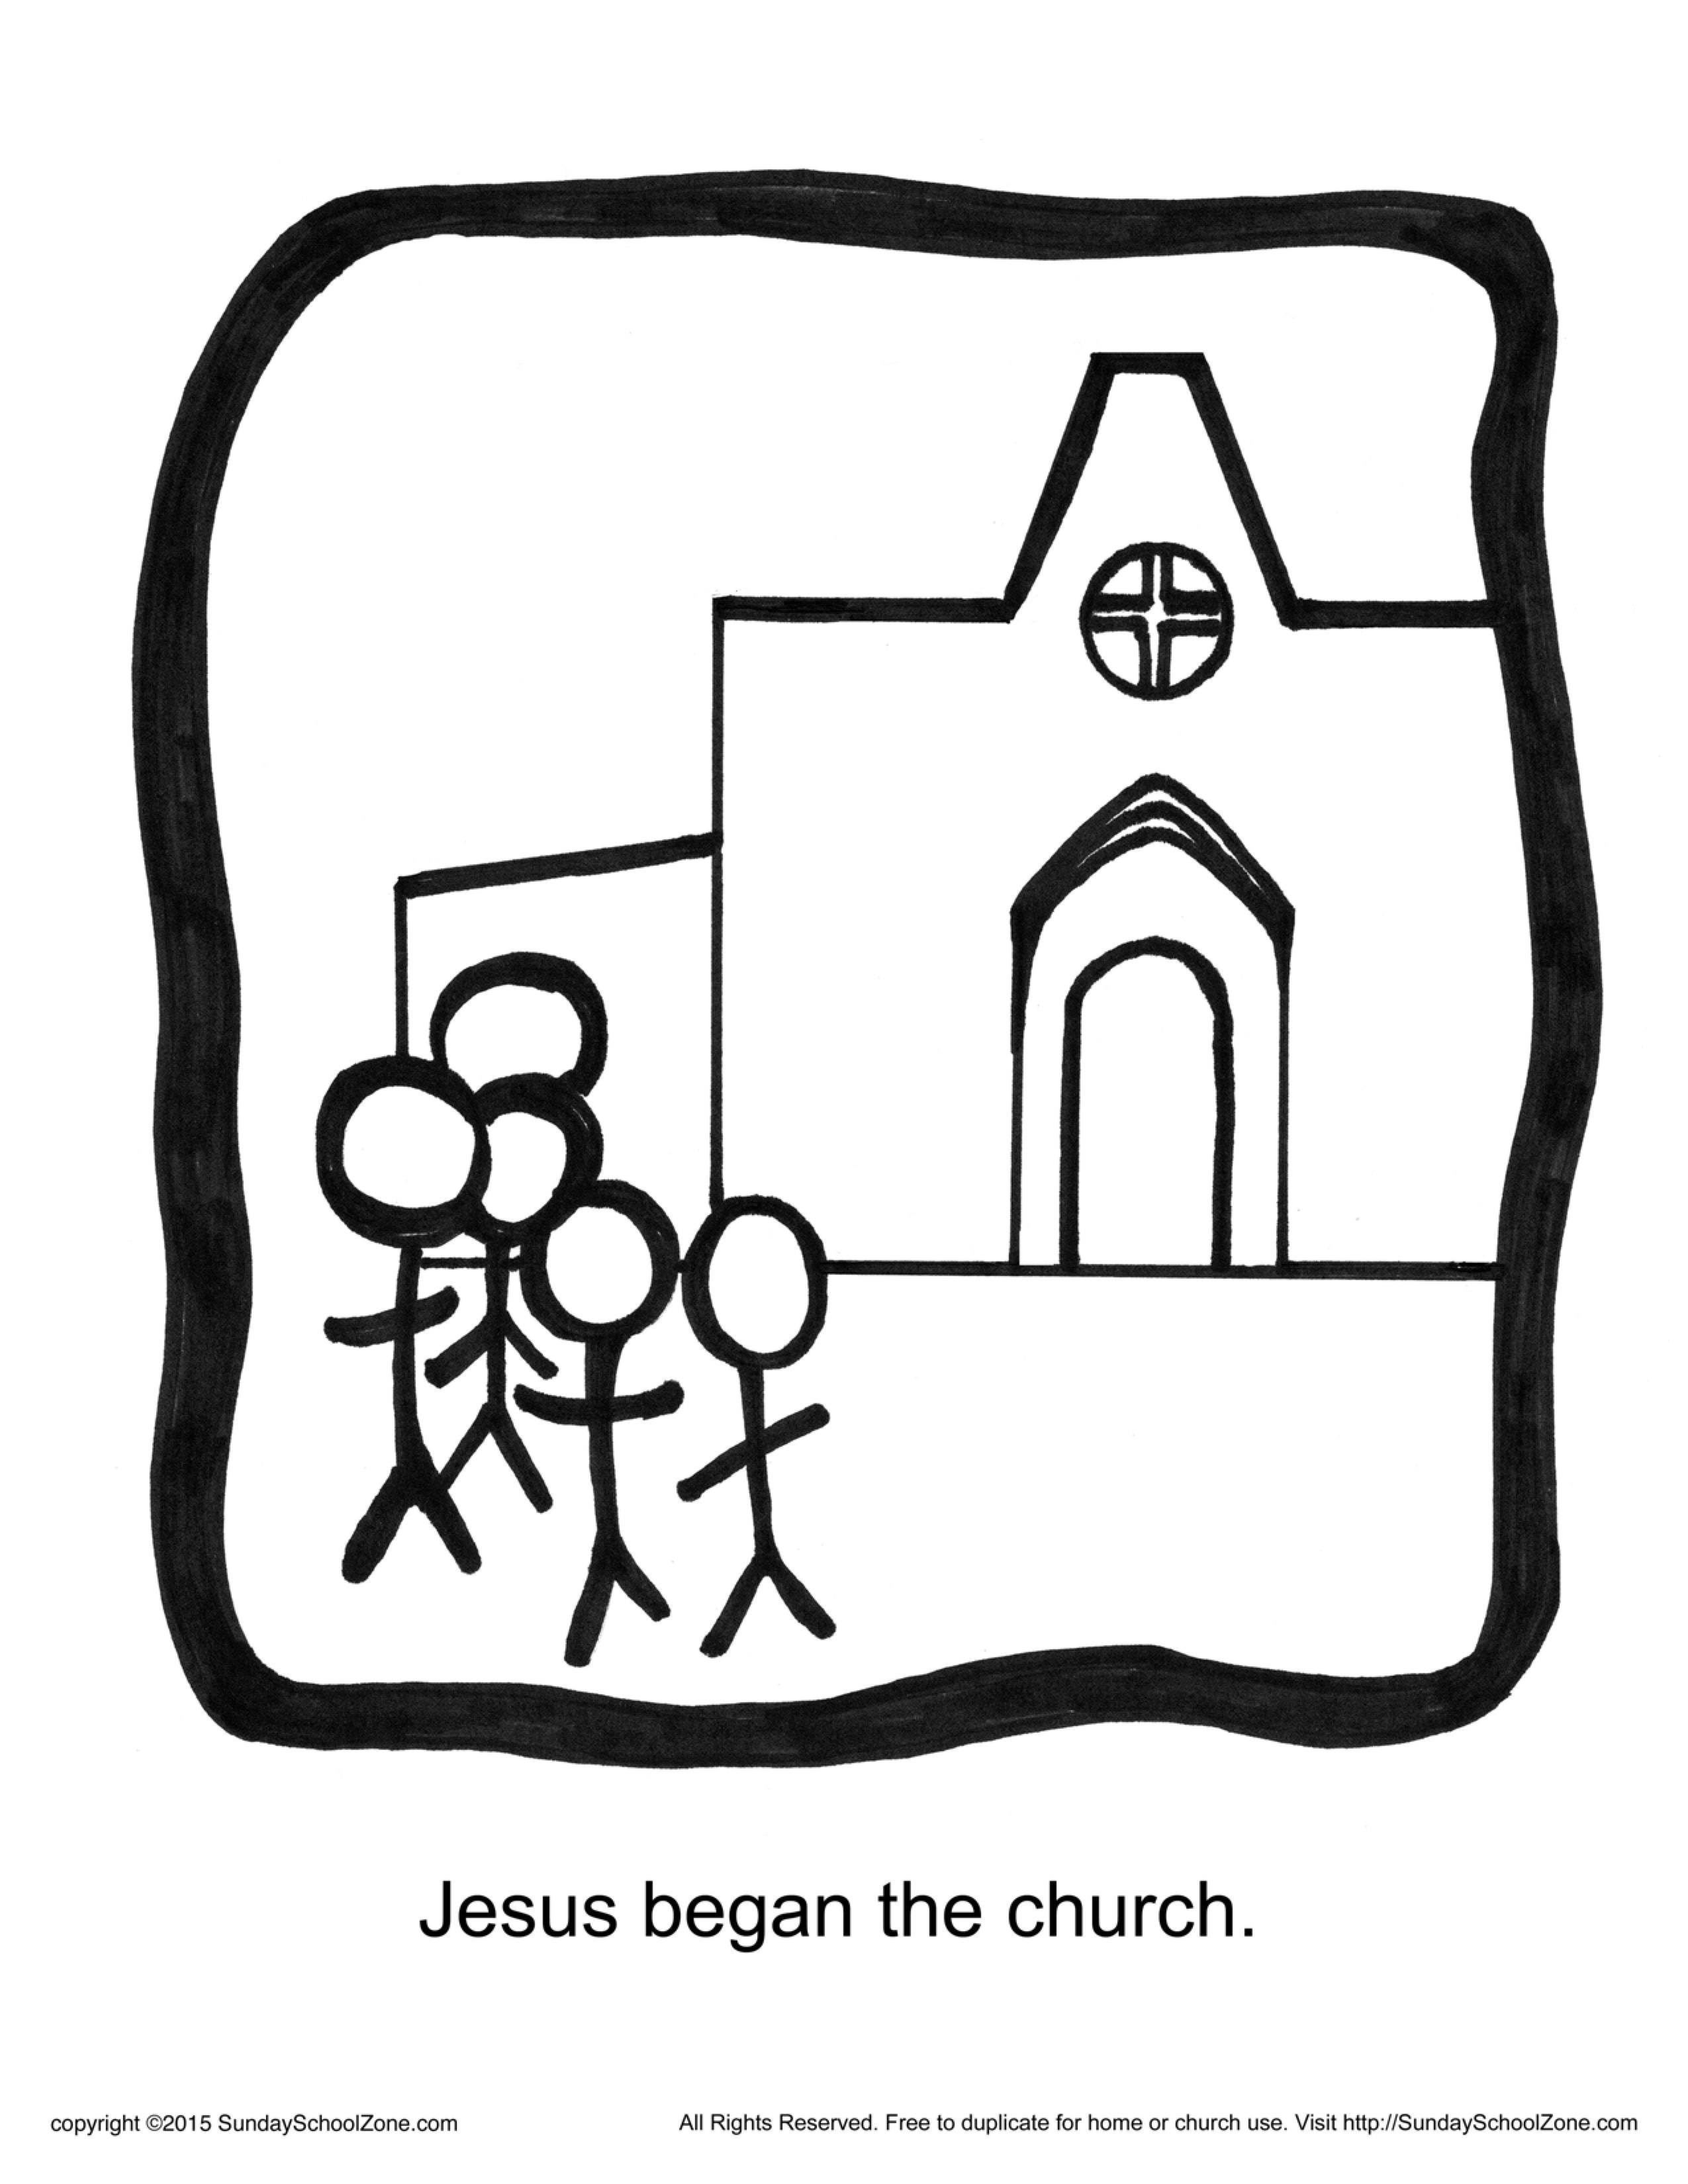 Jesus Began The Church Story Icon Coloring Page Children S Bible Activities Sunday School Activities For Kids Childrens Bible Activities Bible Activities Toddler Sunday School